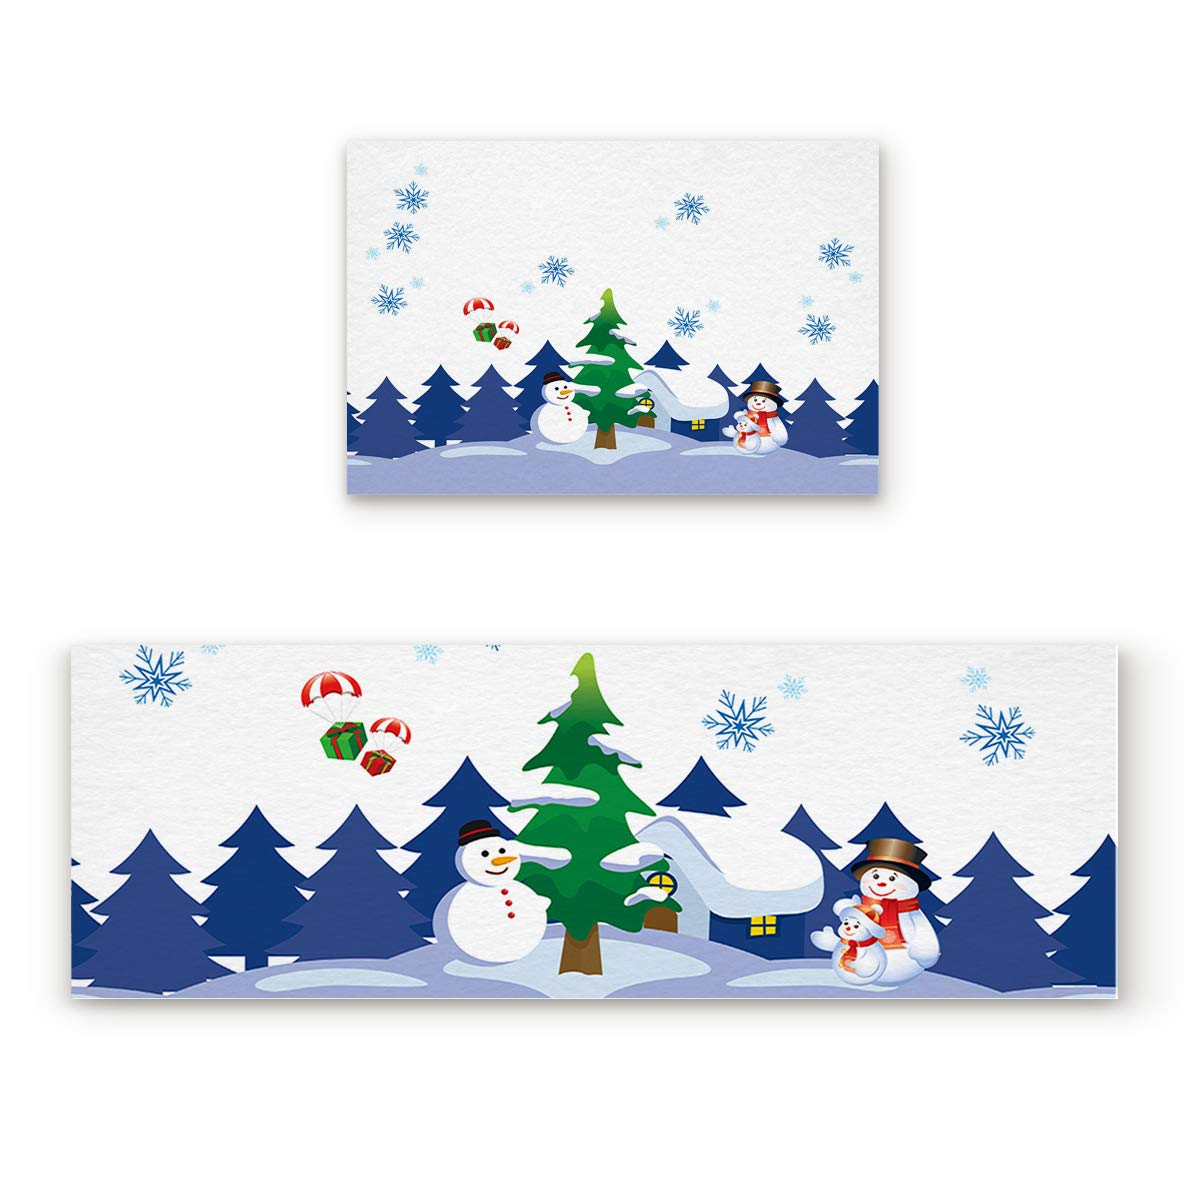 Snowman21sho9750 23.6''W by 35.4''L + 23.6''W by 70.9''L 2 Piece Non-Slip Kitchen Mat Rubber Backing Doormat Runner Rug Set, Kids Area Rug Carpet Bedroom Rug Christmas Snowing Snowman and Snowflake Pattern 23.6''x35.4''+23.6''x70.9''